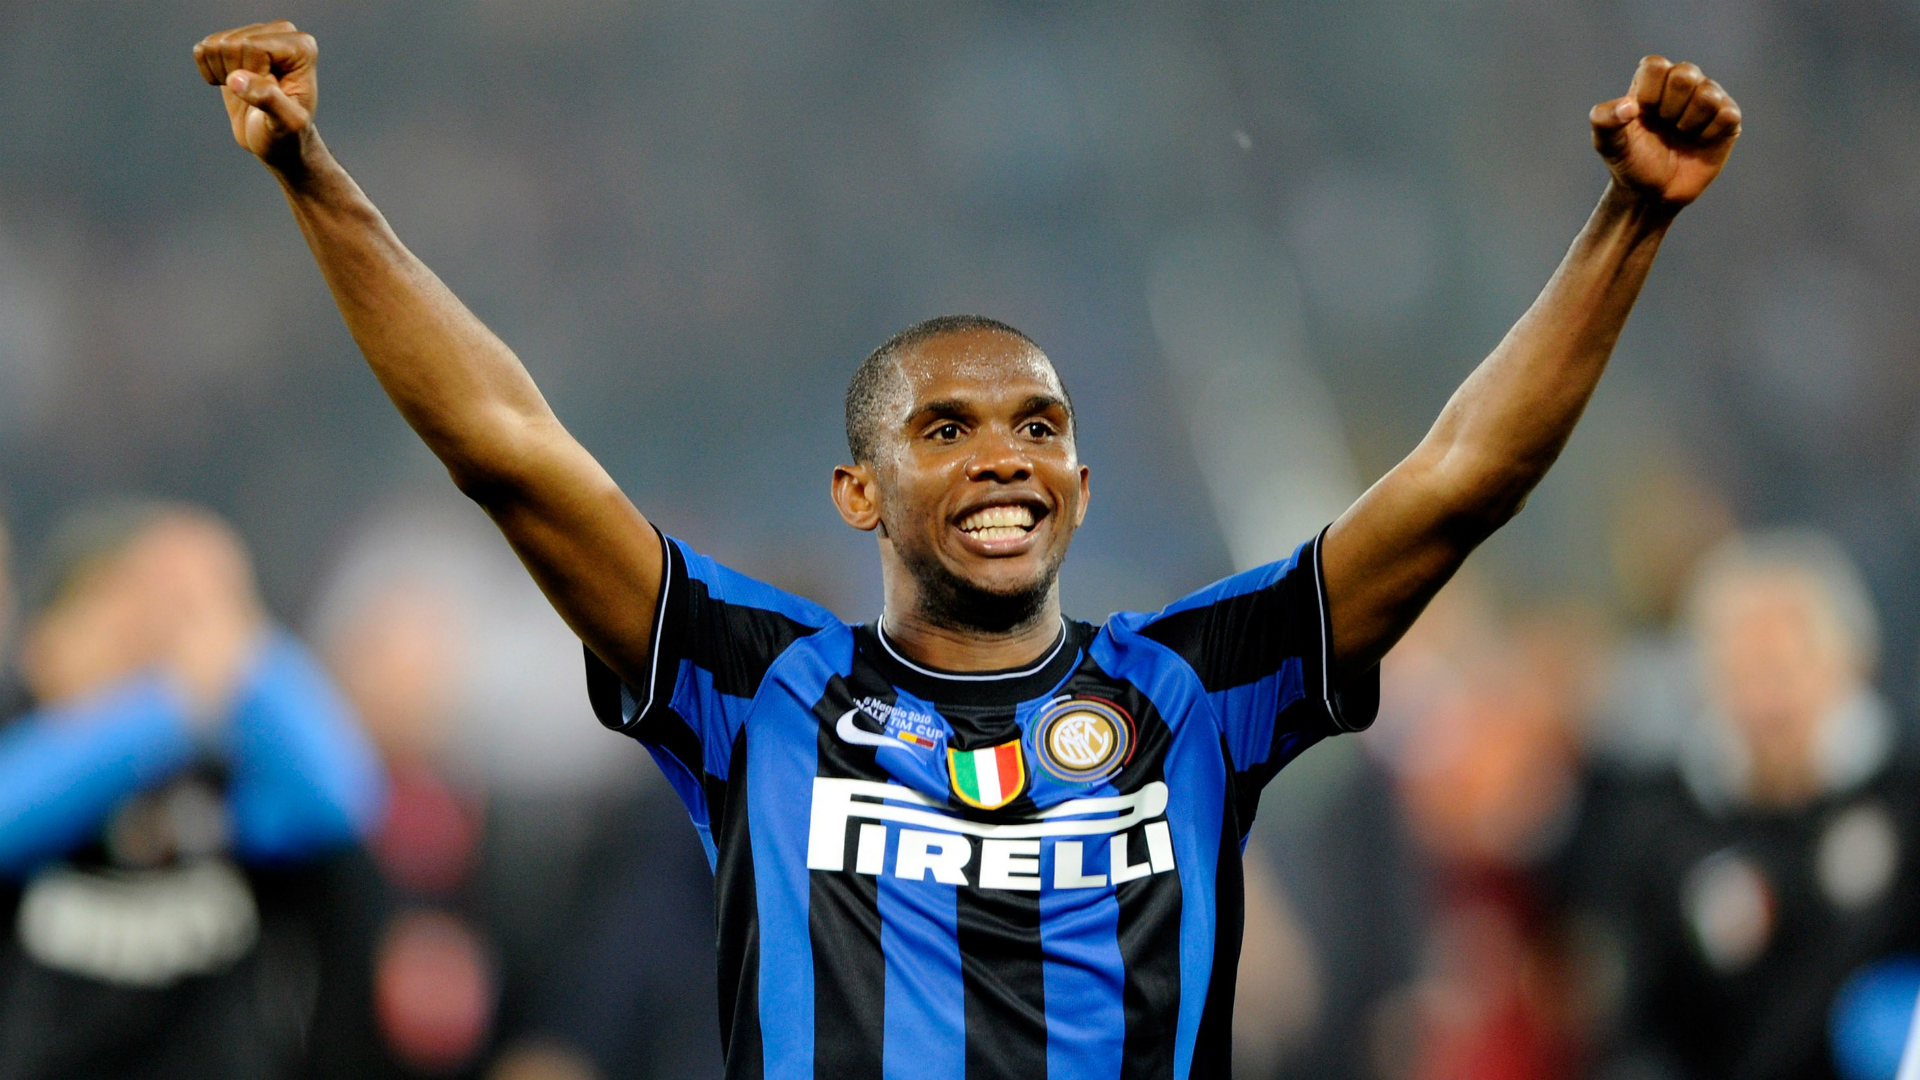 Ex-Barcelona star Samuel Eto'o retires after glittering 22-year career